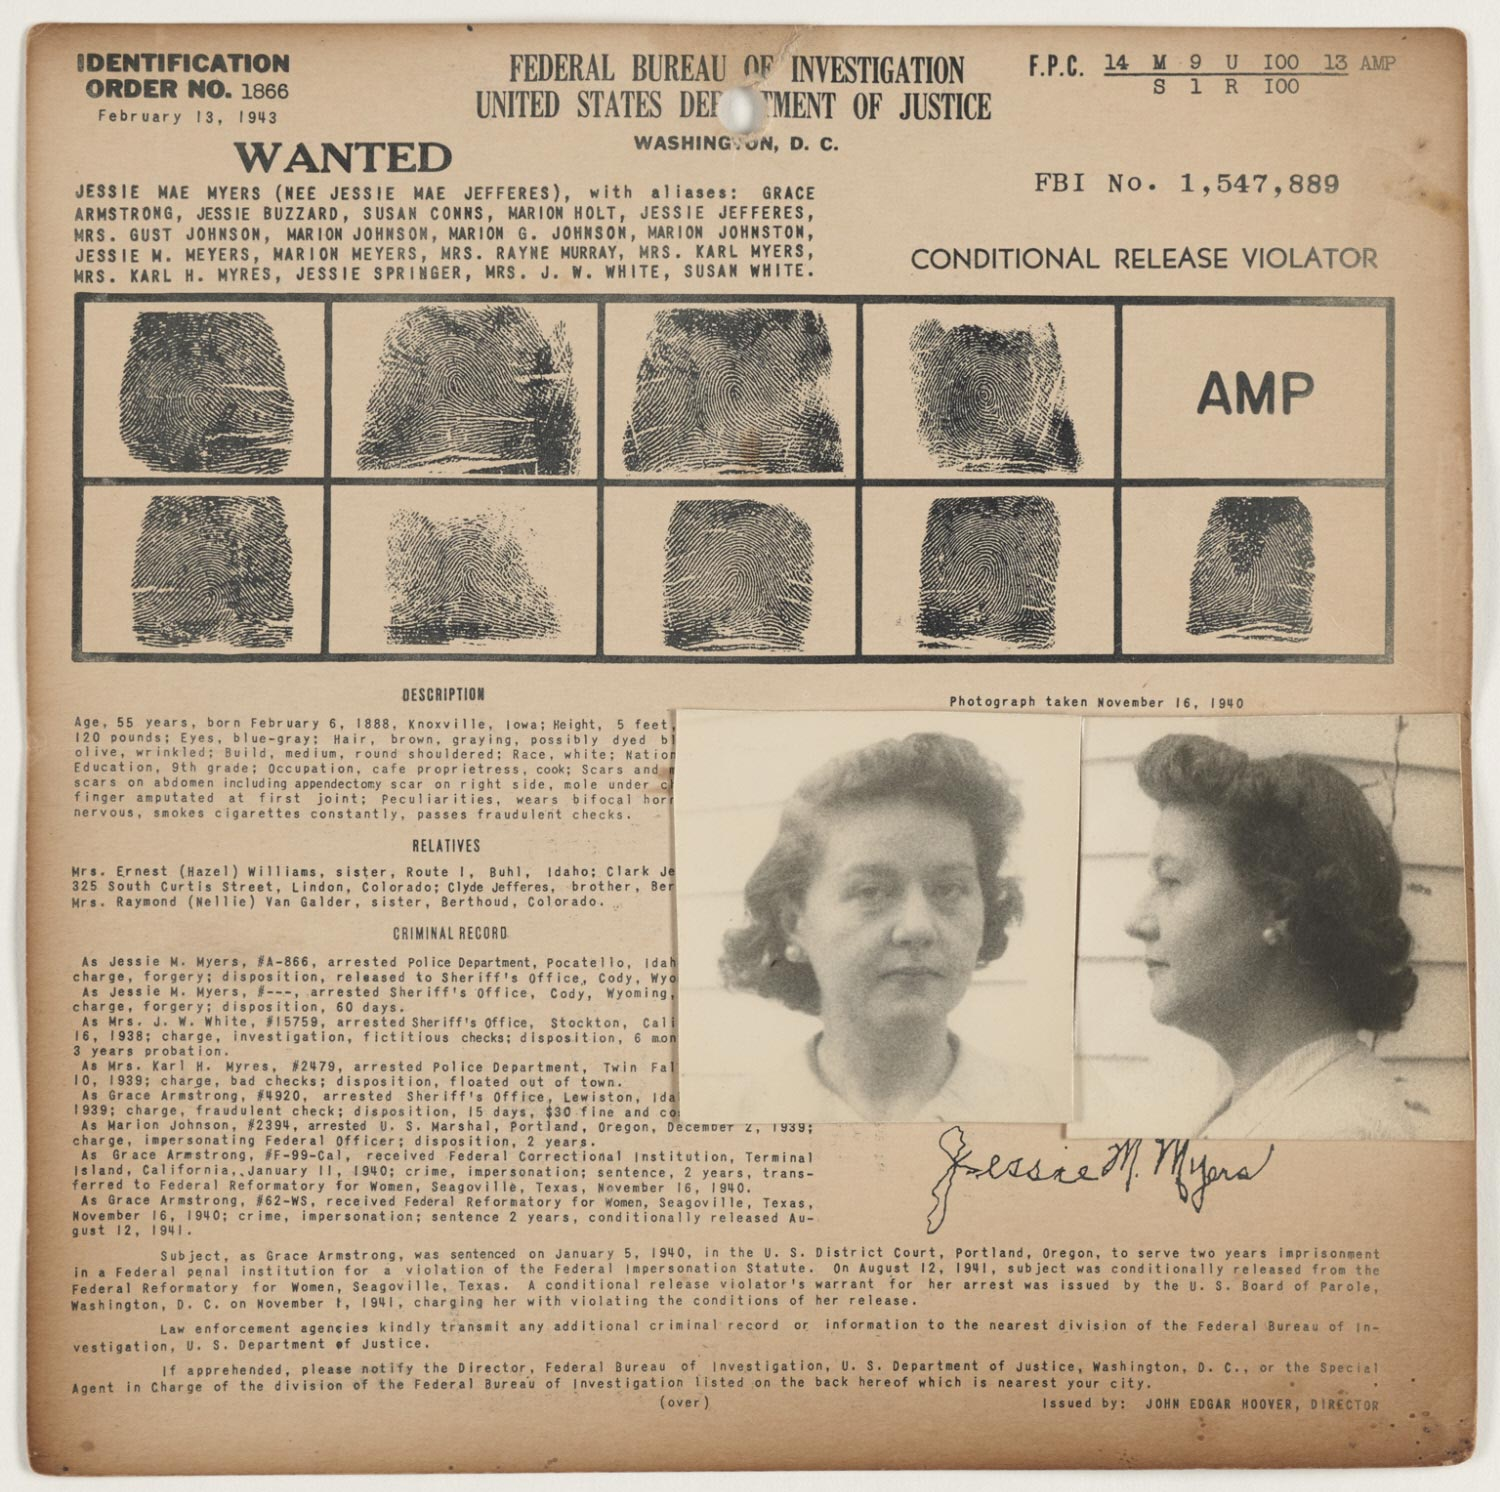 FBI Wanted Notice: Jessie Mae Myers (Claire Donati)